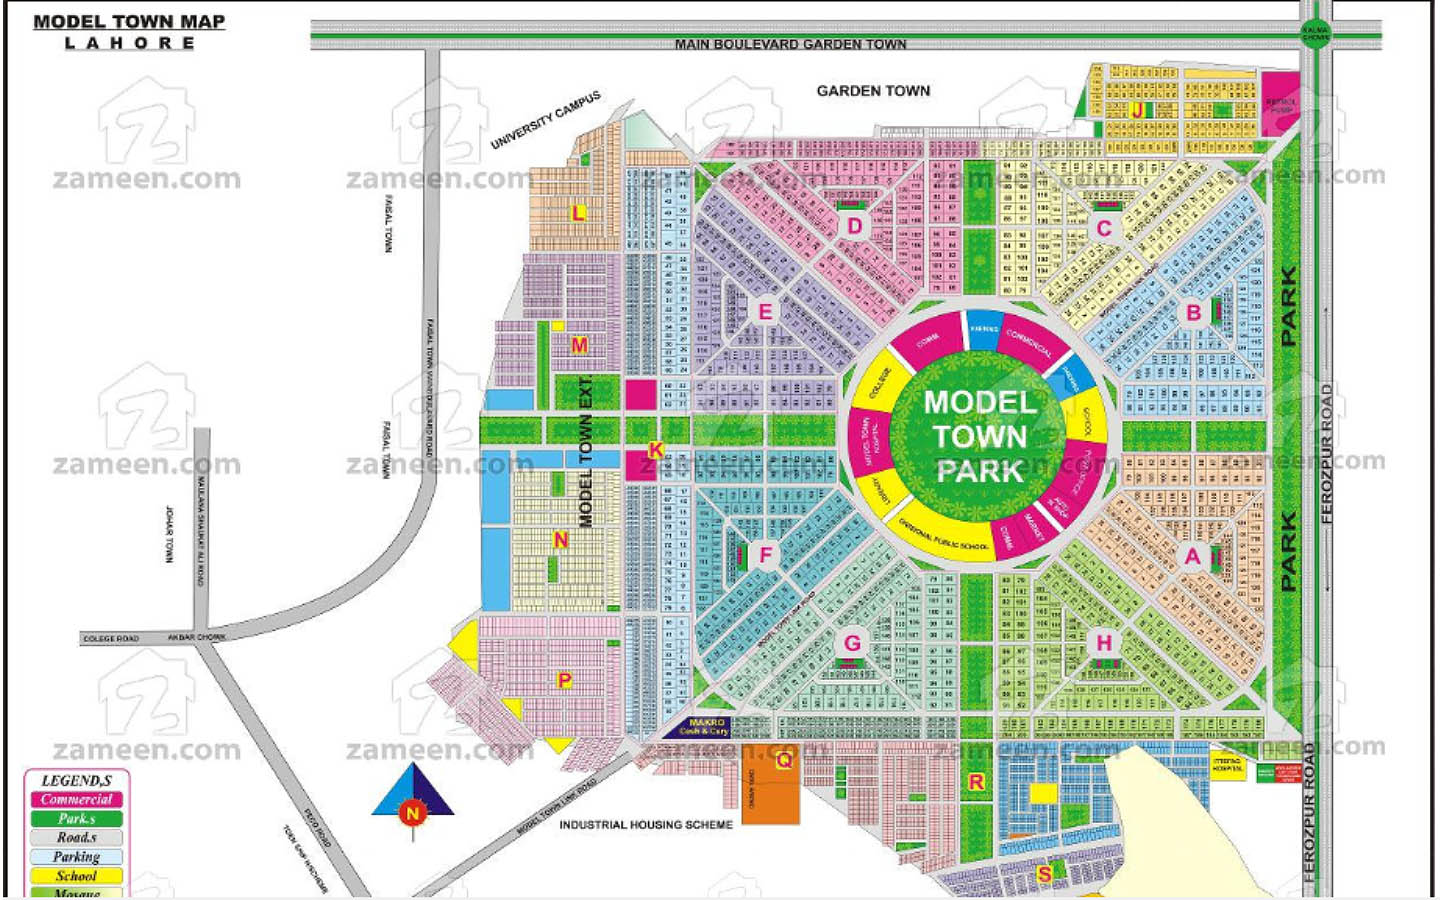 Development Plan of Model Town, Lahore